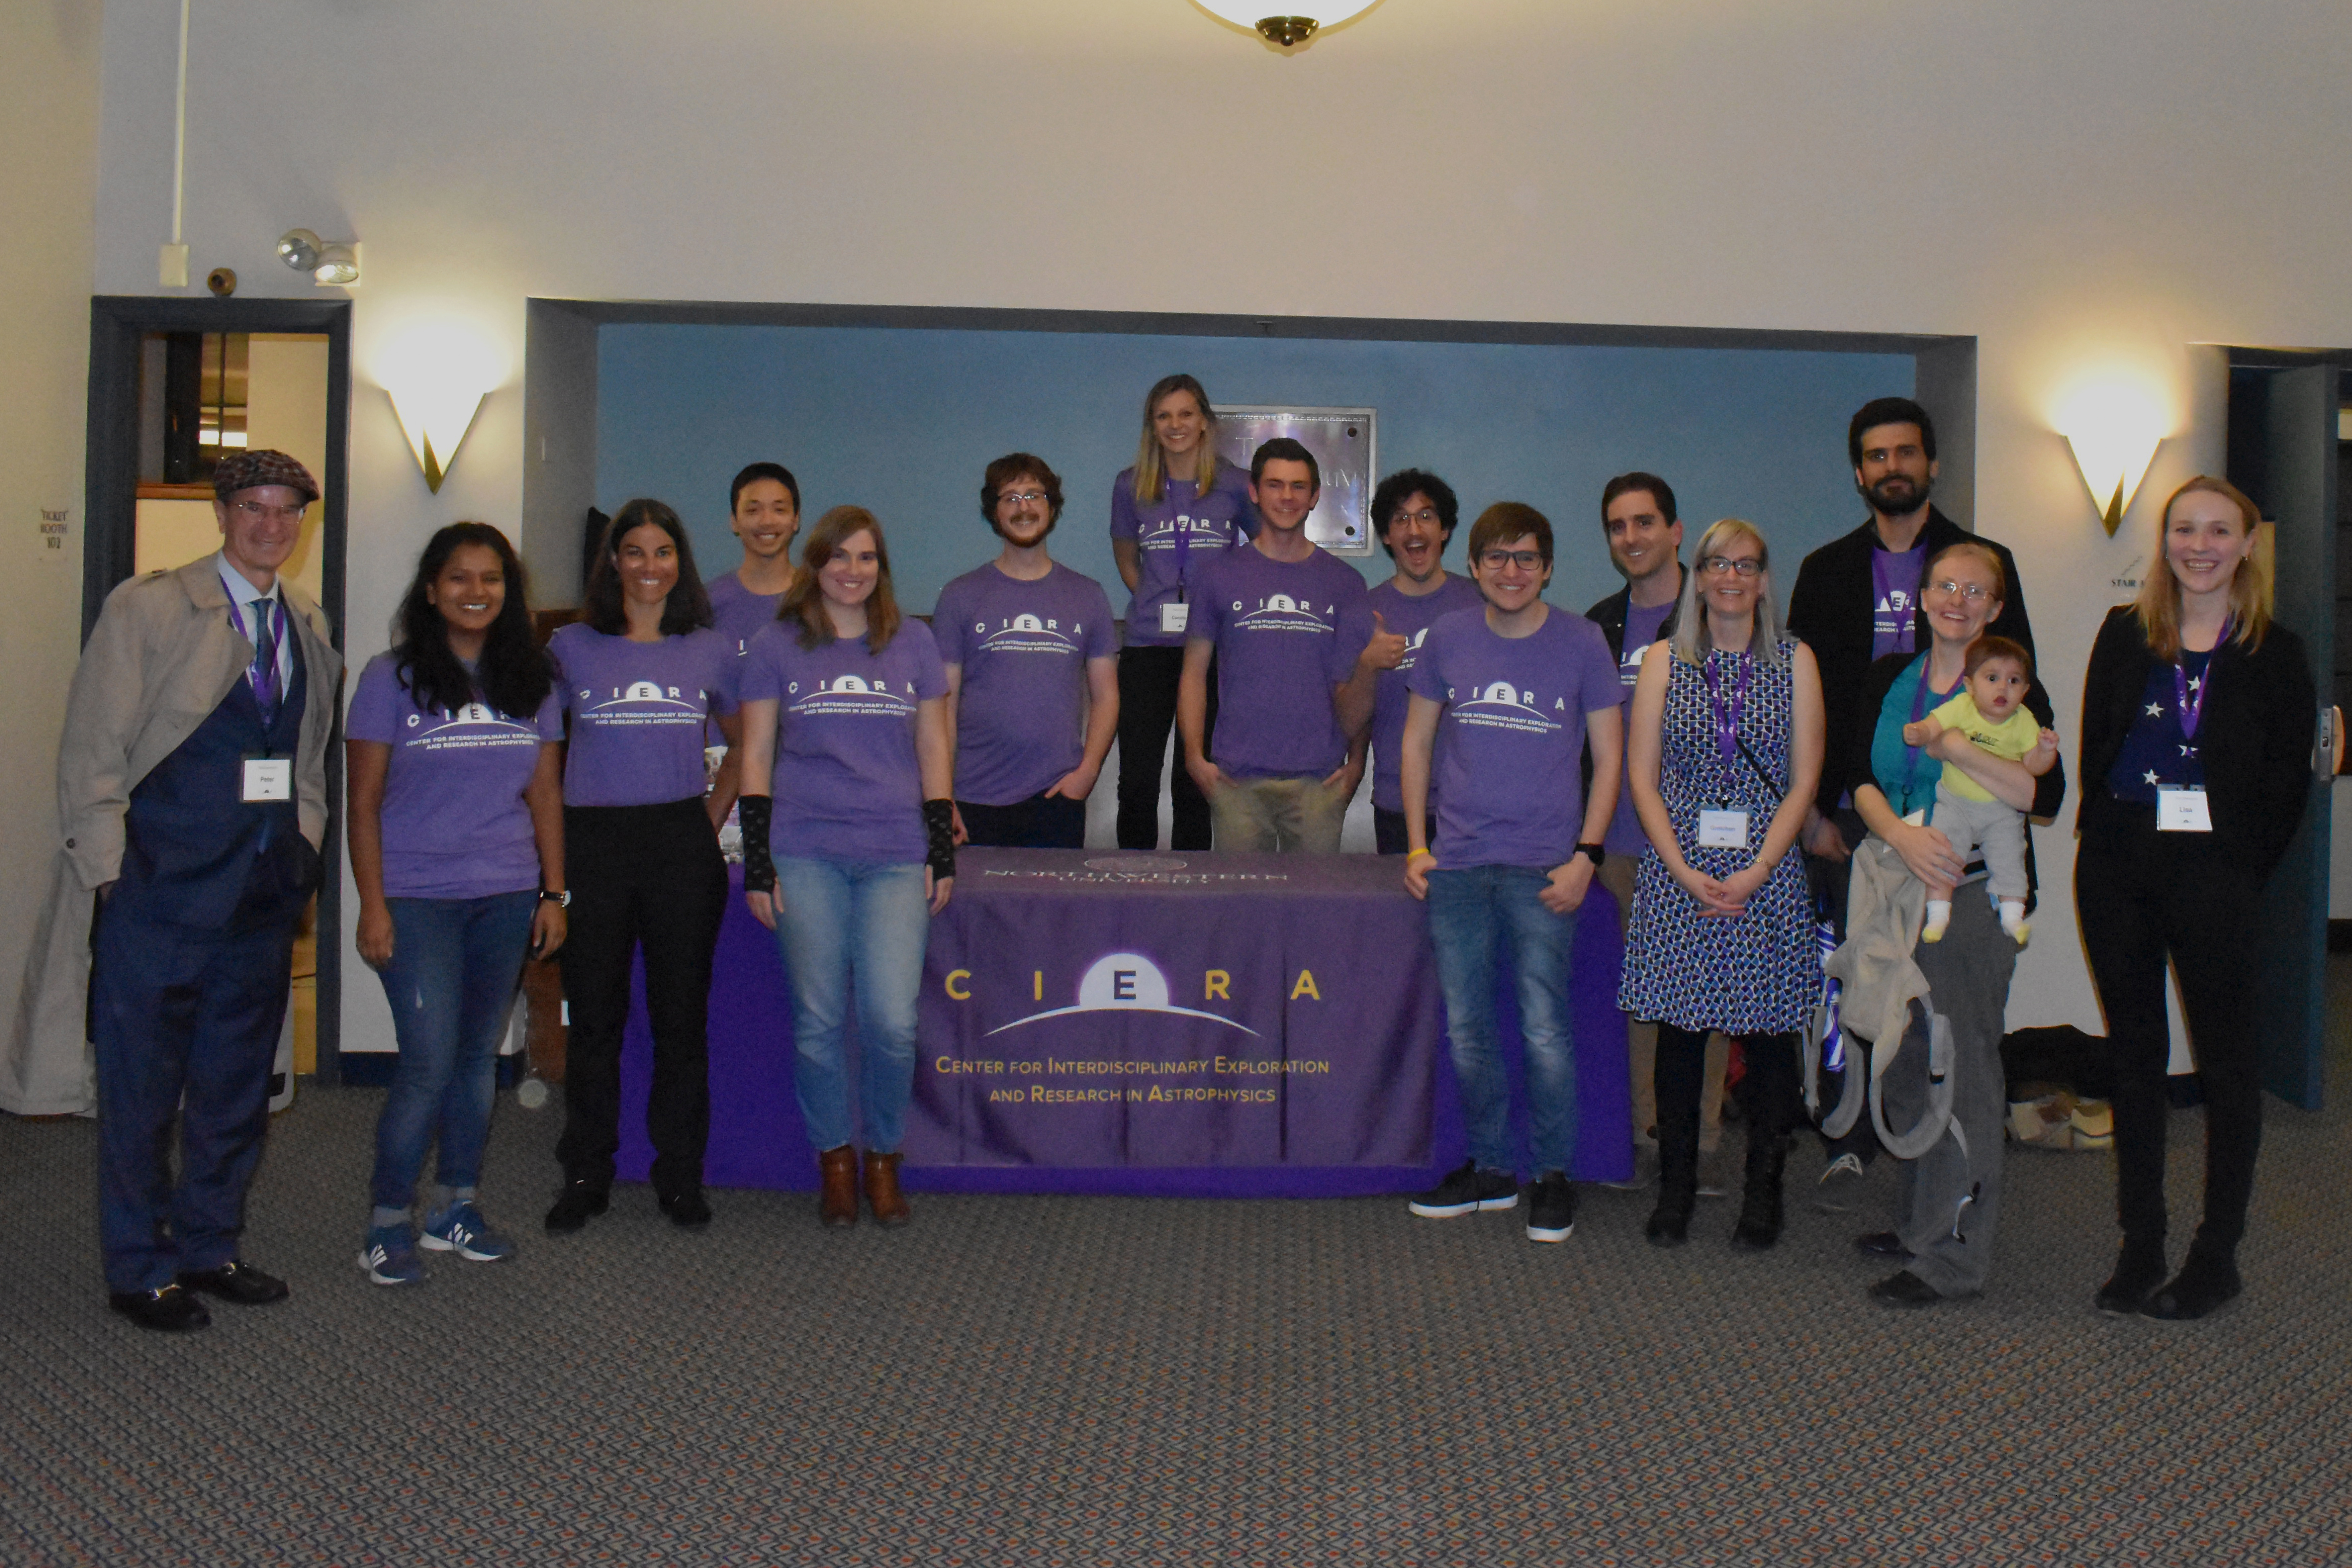 Group photo of CIERA staff who volunteered at the event.